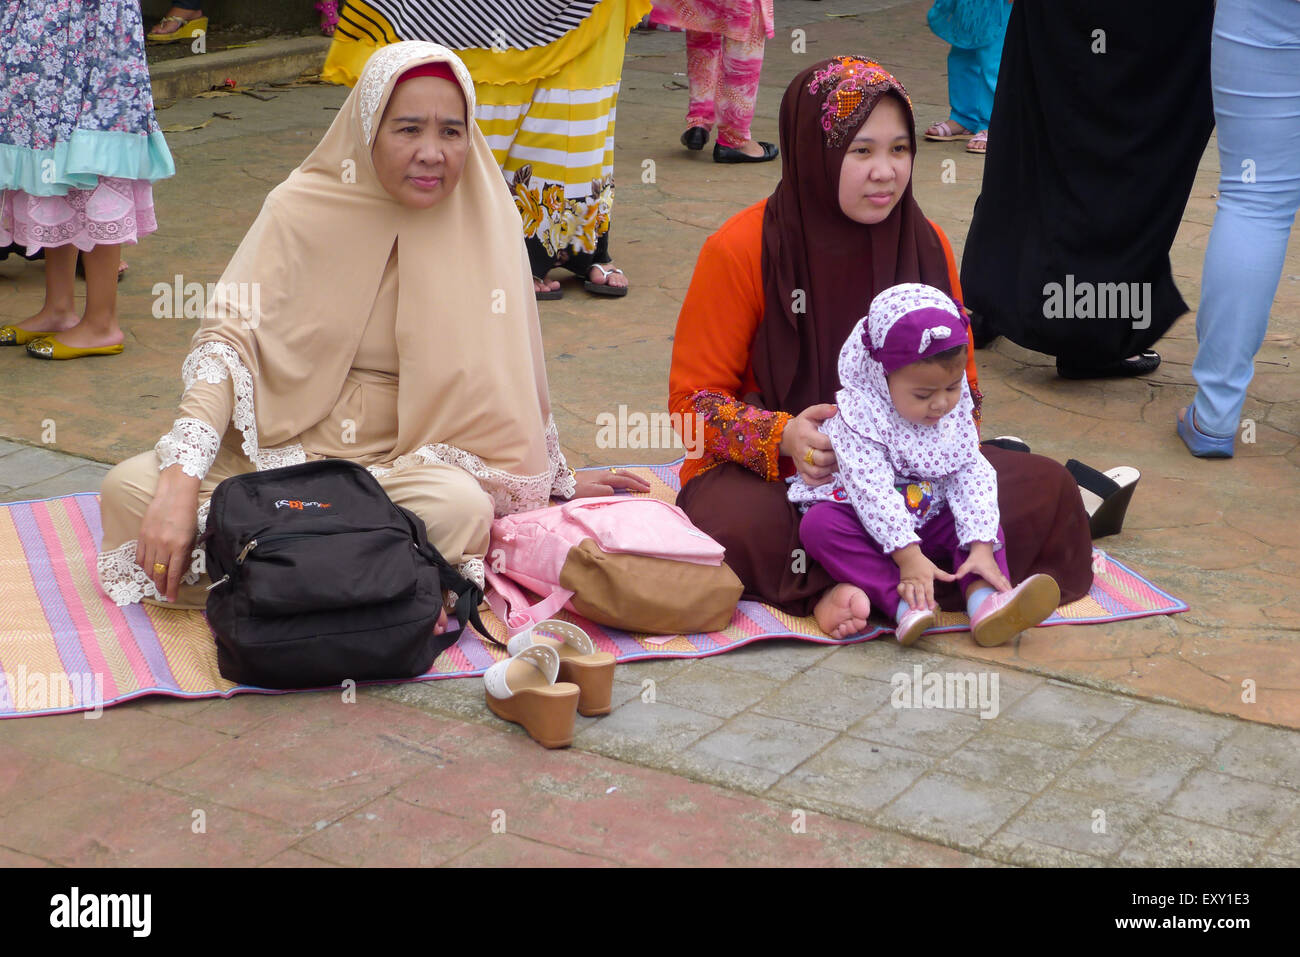 Manila, Philippines. 17th July, 2015. Muslim families enjoyed doing sightseeing while slumped on the park's - Stock Image